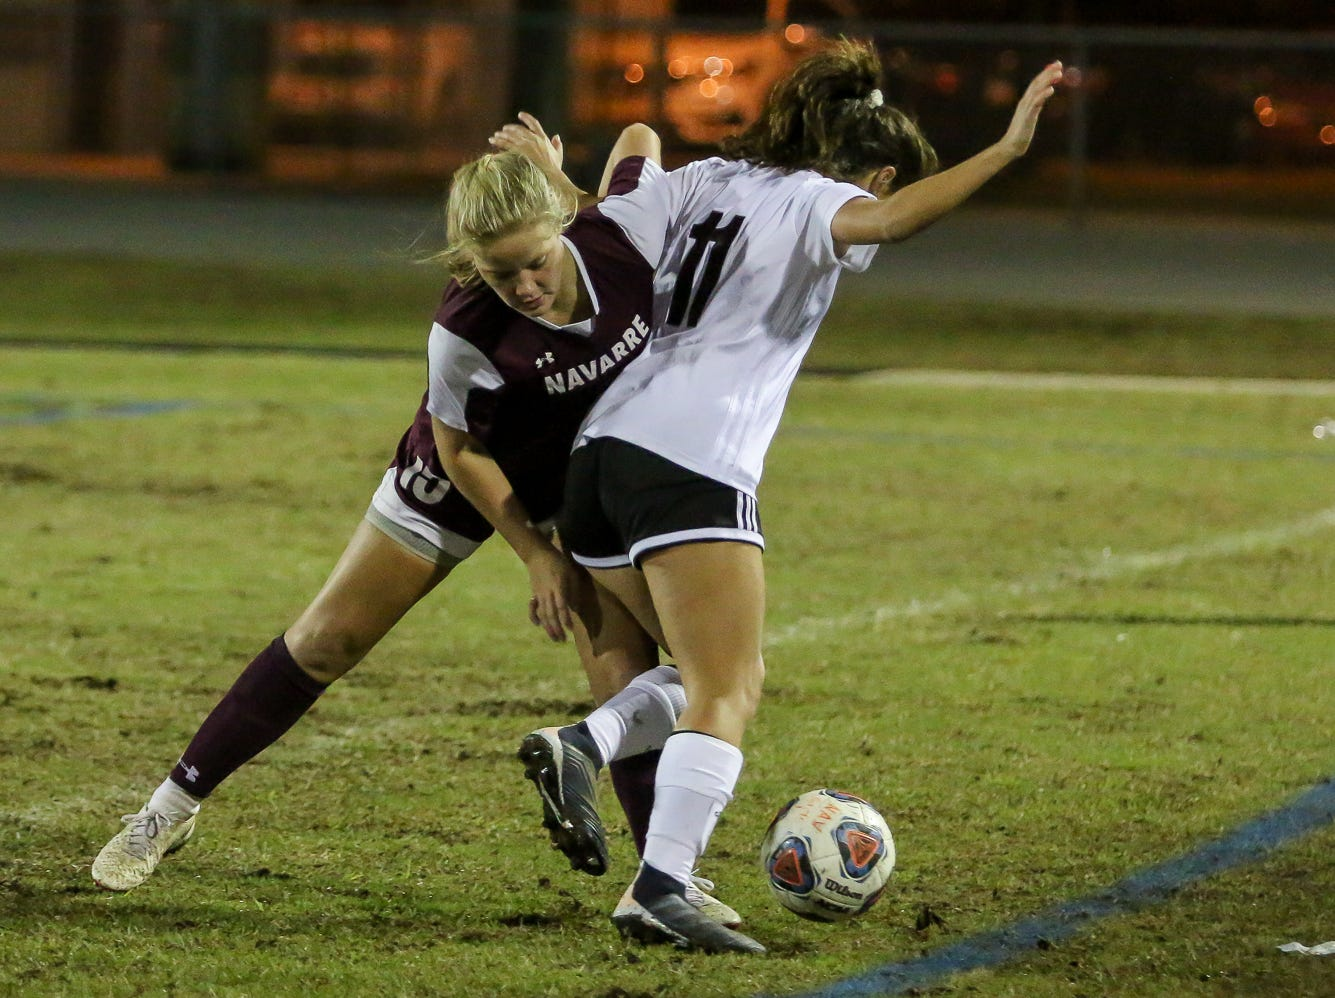 Navarre's Autumn Slaybaugh (15) works to keep Niceville's Kayla Fernandez (11) from passing the ball in a District 1-4A showdown of unbeaten teams at Navarre High School on Tuesday, December 4, 2018. The game ended in a 1-1 tie.